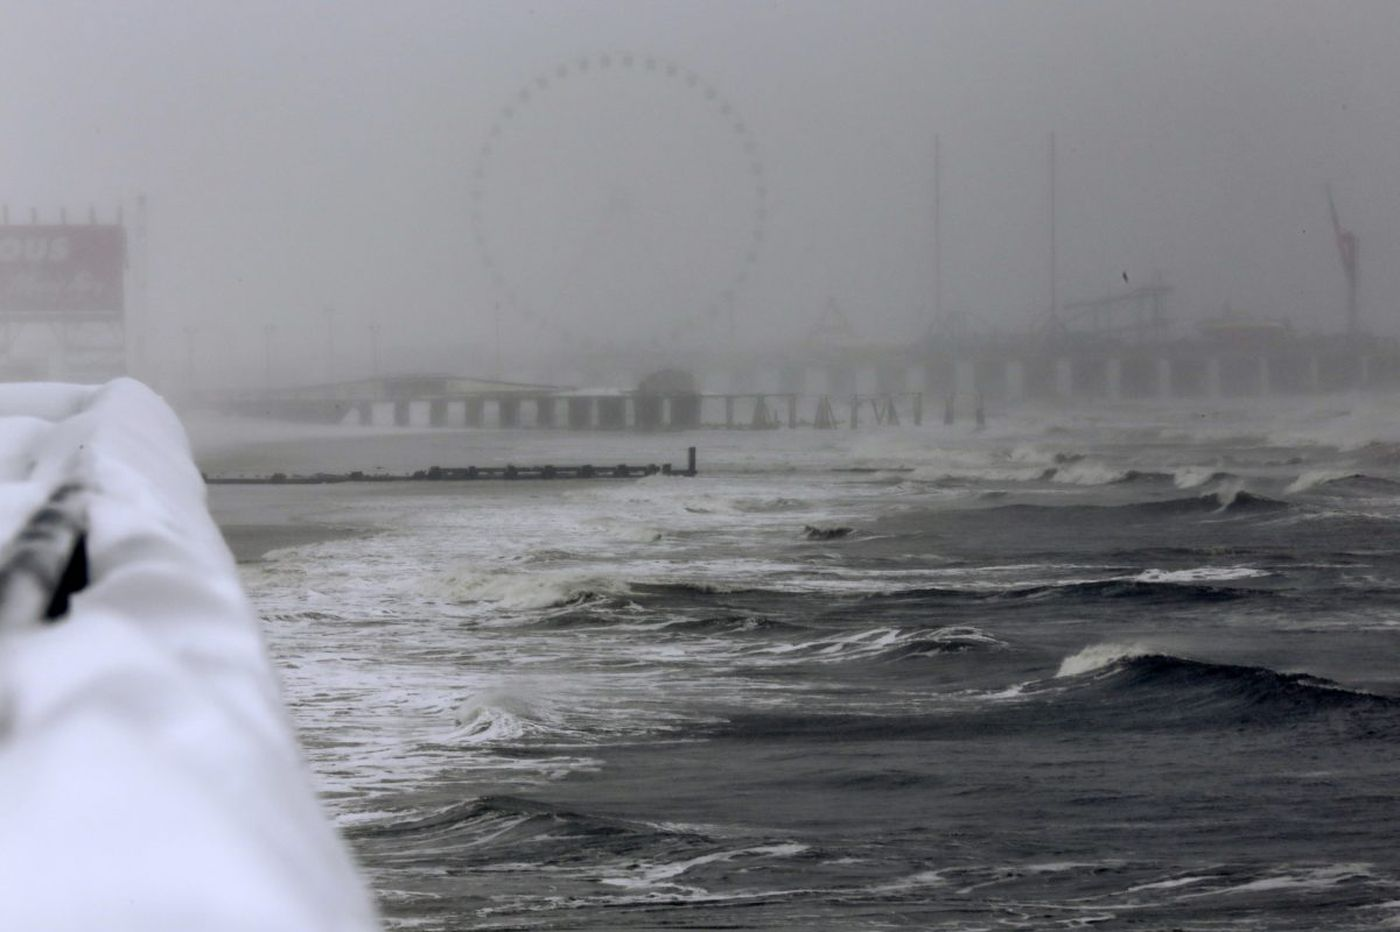 It is not fear-mongering to appreciate the existential impact of climate change | Opinion